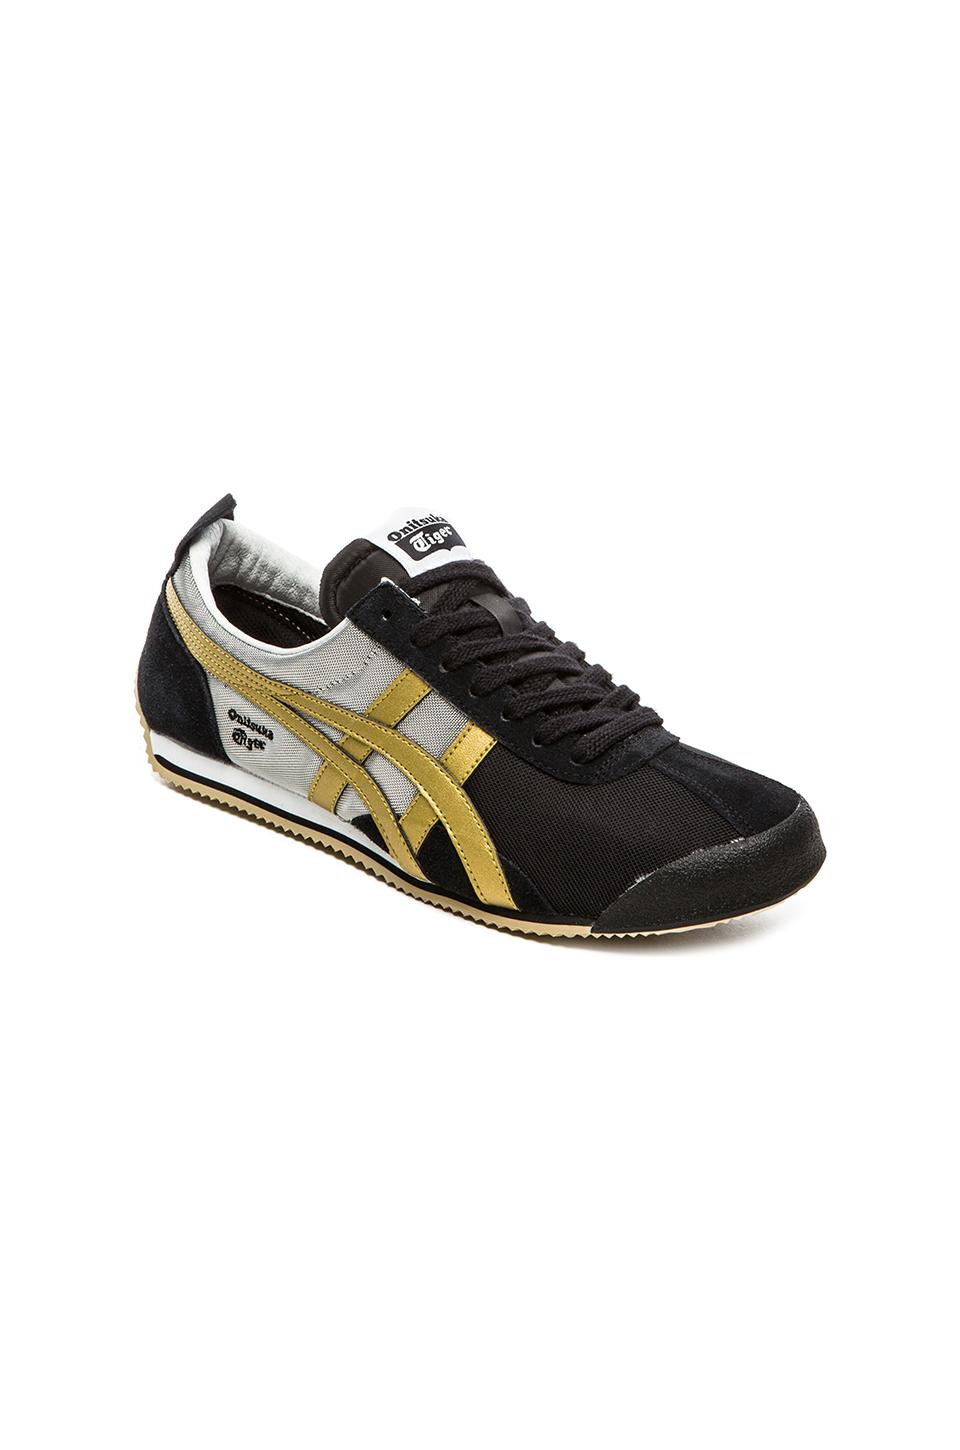 Onitsuka Tiger Fencing Shoes Review